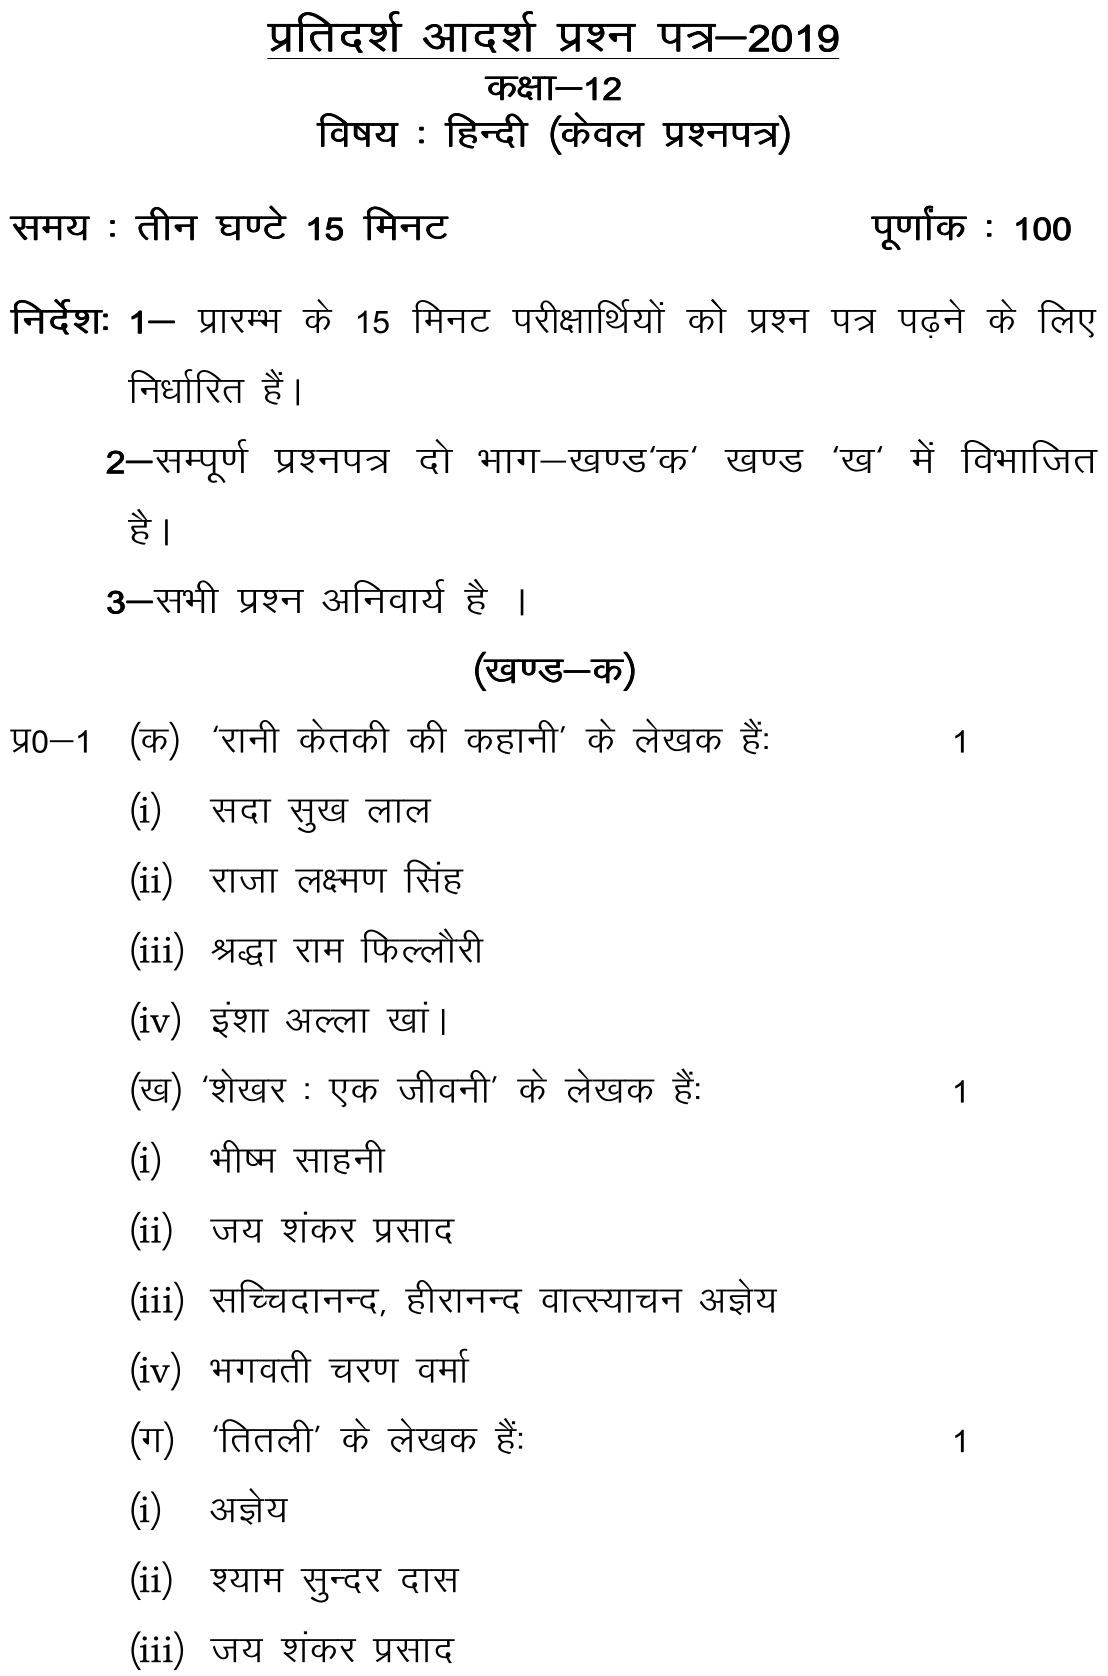 UP 12th Board Model Paper 2019